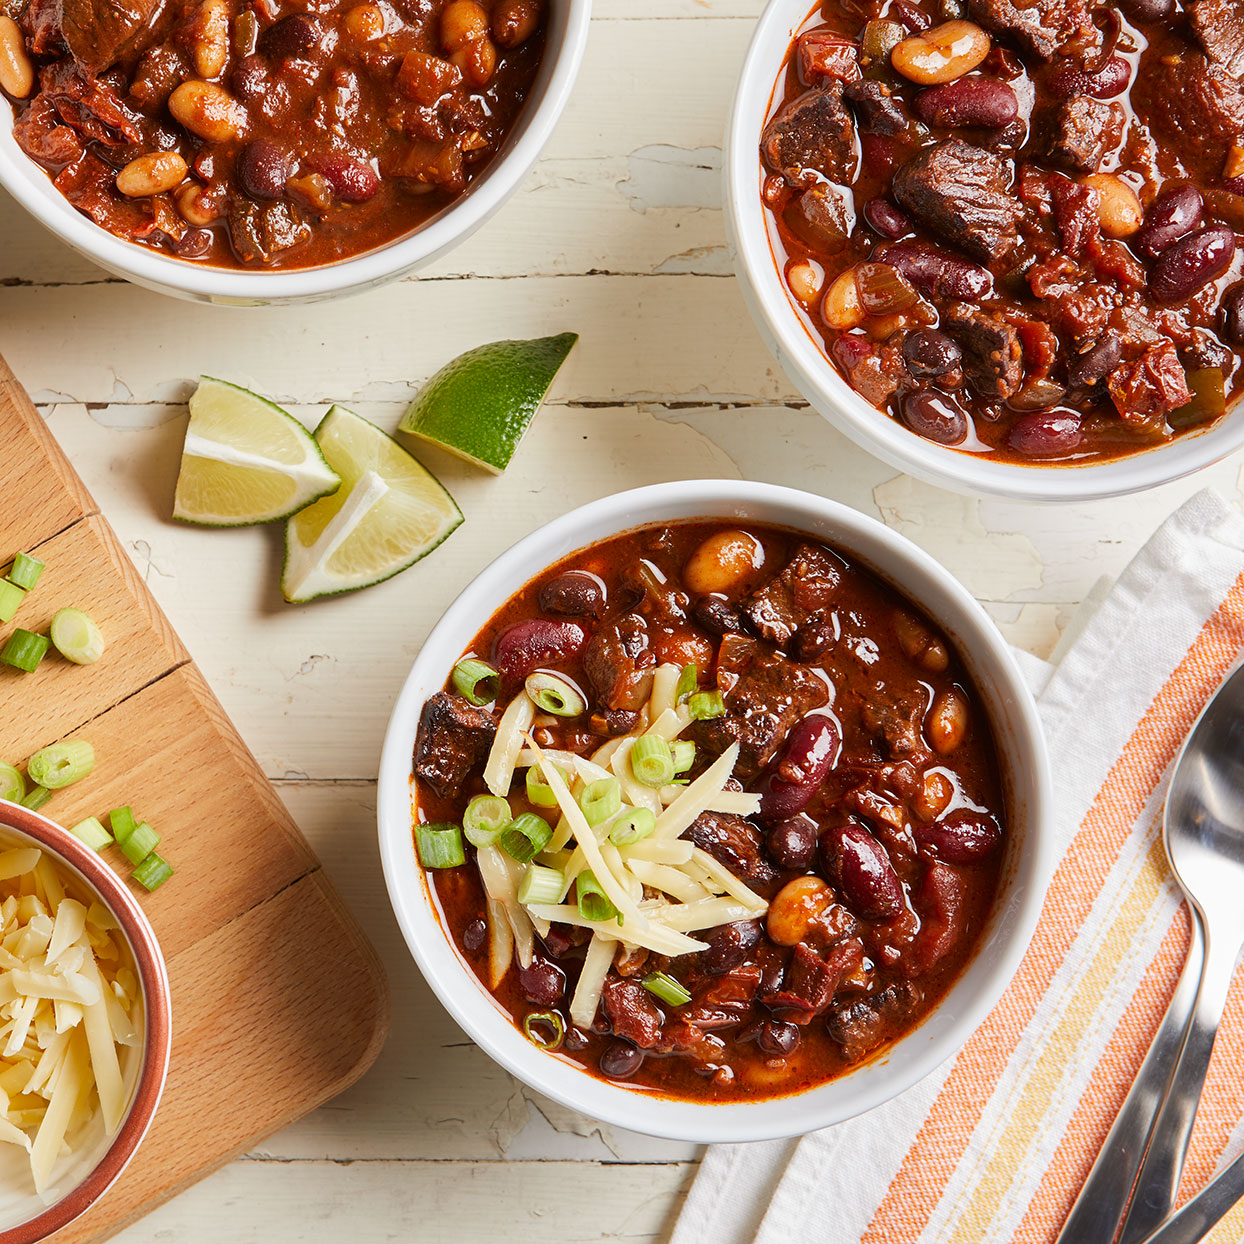 Three-Bean Chili Allrecipes Trusted Brands